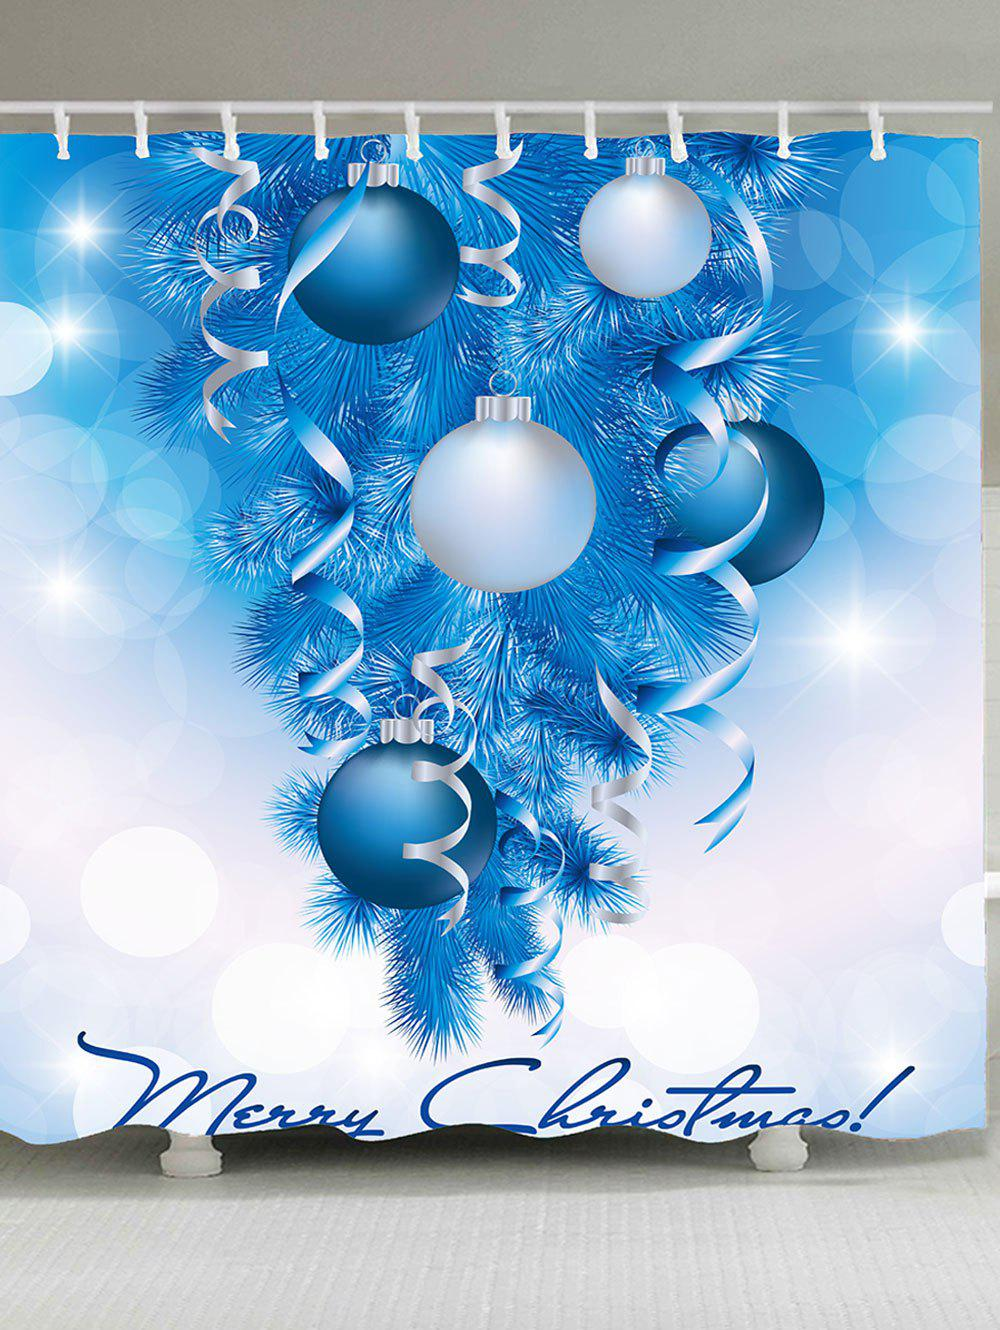 Christmas Tree Decorative Balls Patterned Shower CurtainHOME<br><br>Size: W59 INCH * L71 INCH; Color: BLUE; Products Type: Shower Curtains; Materials: Polyester; Pattern: Ball,Christmas Tree; Style: Festival; Number of Hook Holes: W59 inch * L71 inch:10, W71 inch * L71 inch:12, W71 inch * L79 inch:12; Package Contents: 1 x Shower Curtain 1 x Hooks (Set);